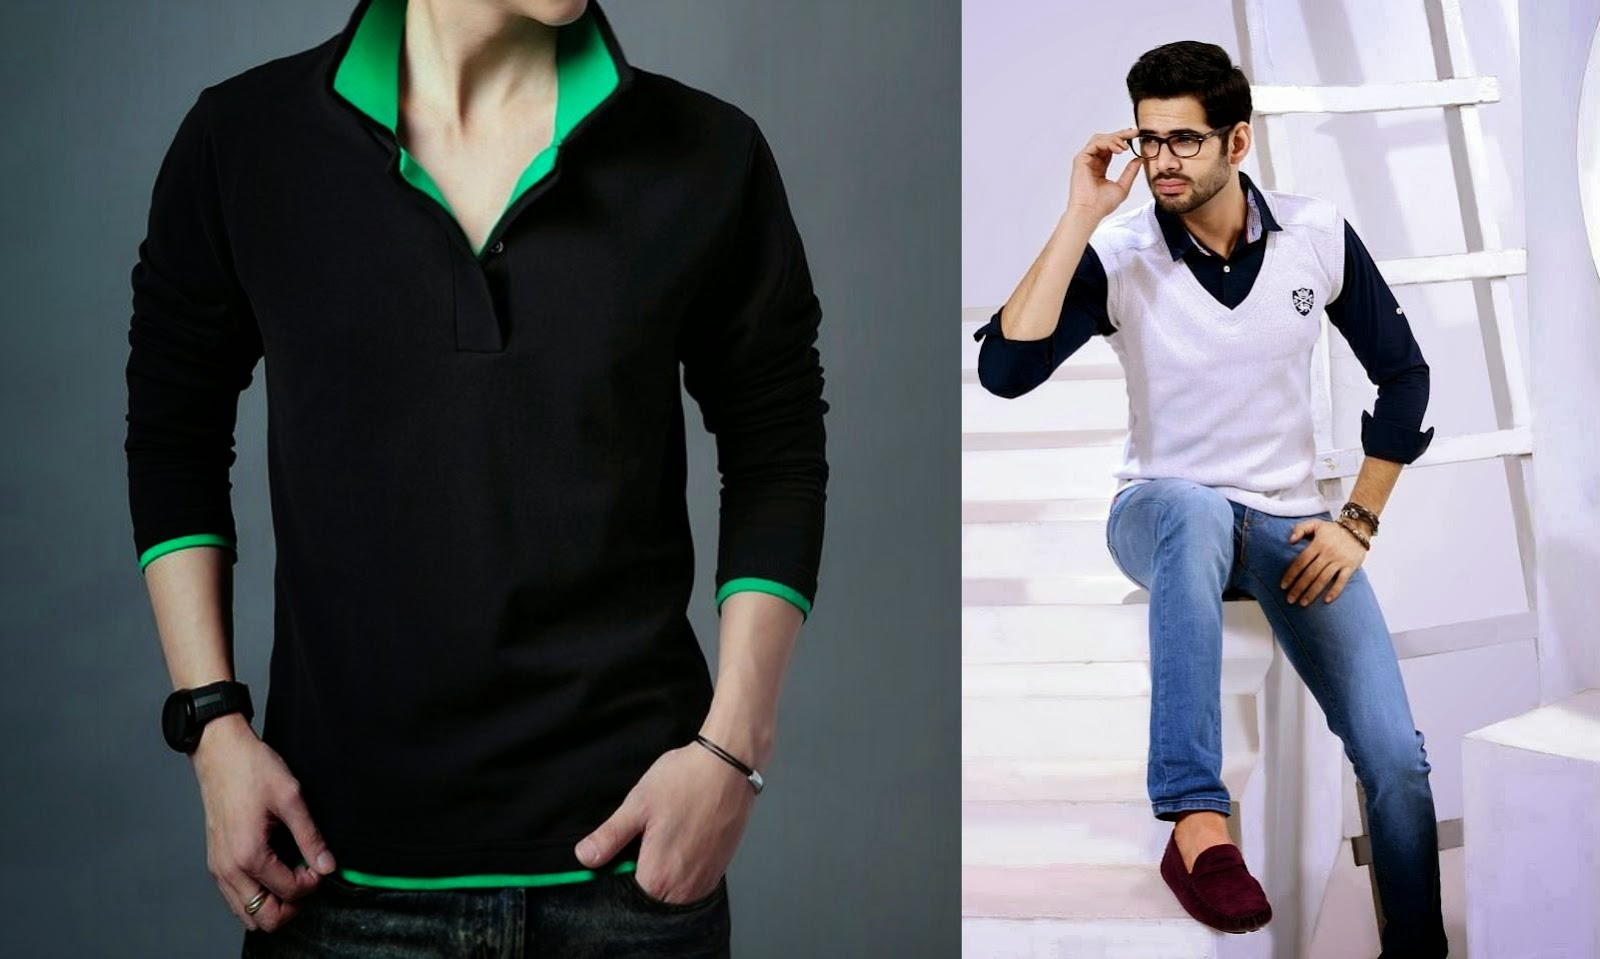 Shirt design latest - Sports Shirts Casual Design Shirts White Shirts Are More Demanded In All Over The World Mostly People Love To Wear T Shirts